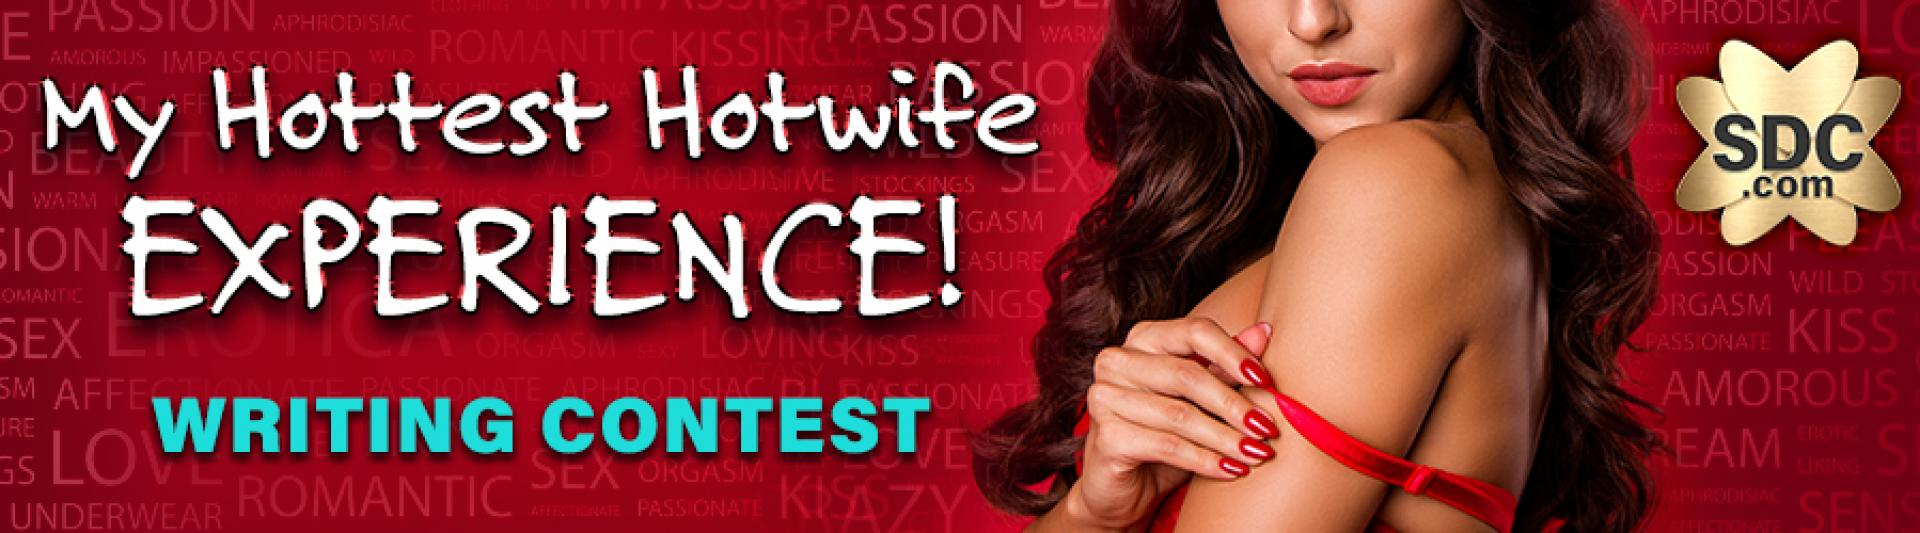 SDC Member Writing Contest Hottest Hotwife Experience 2020